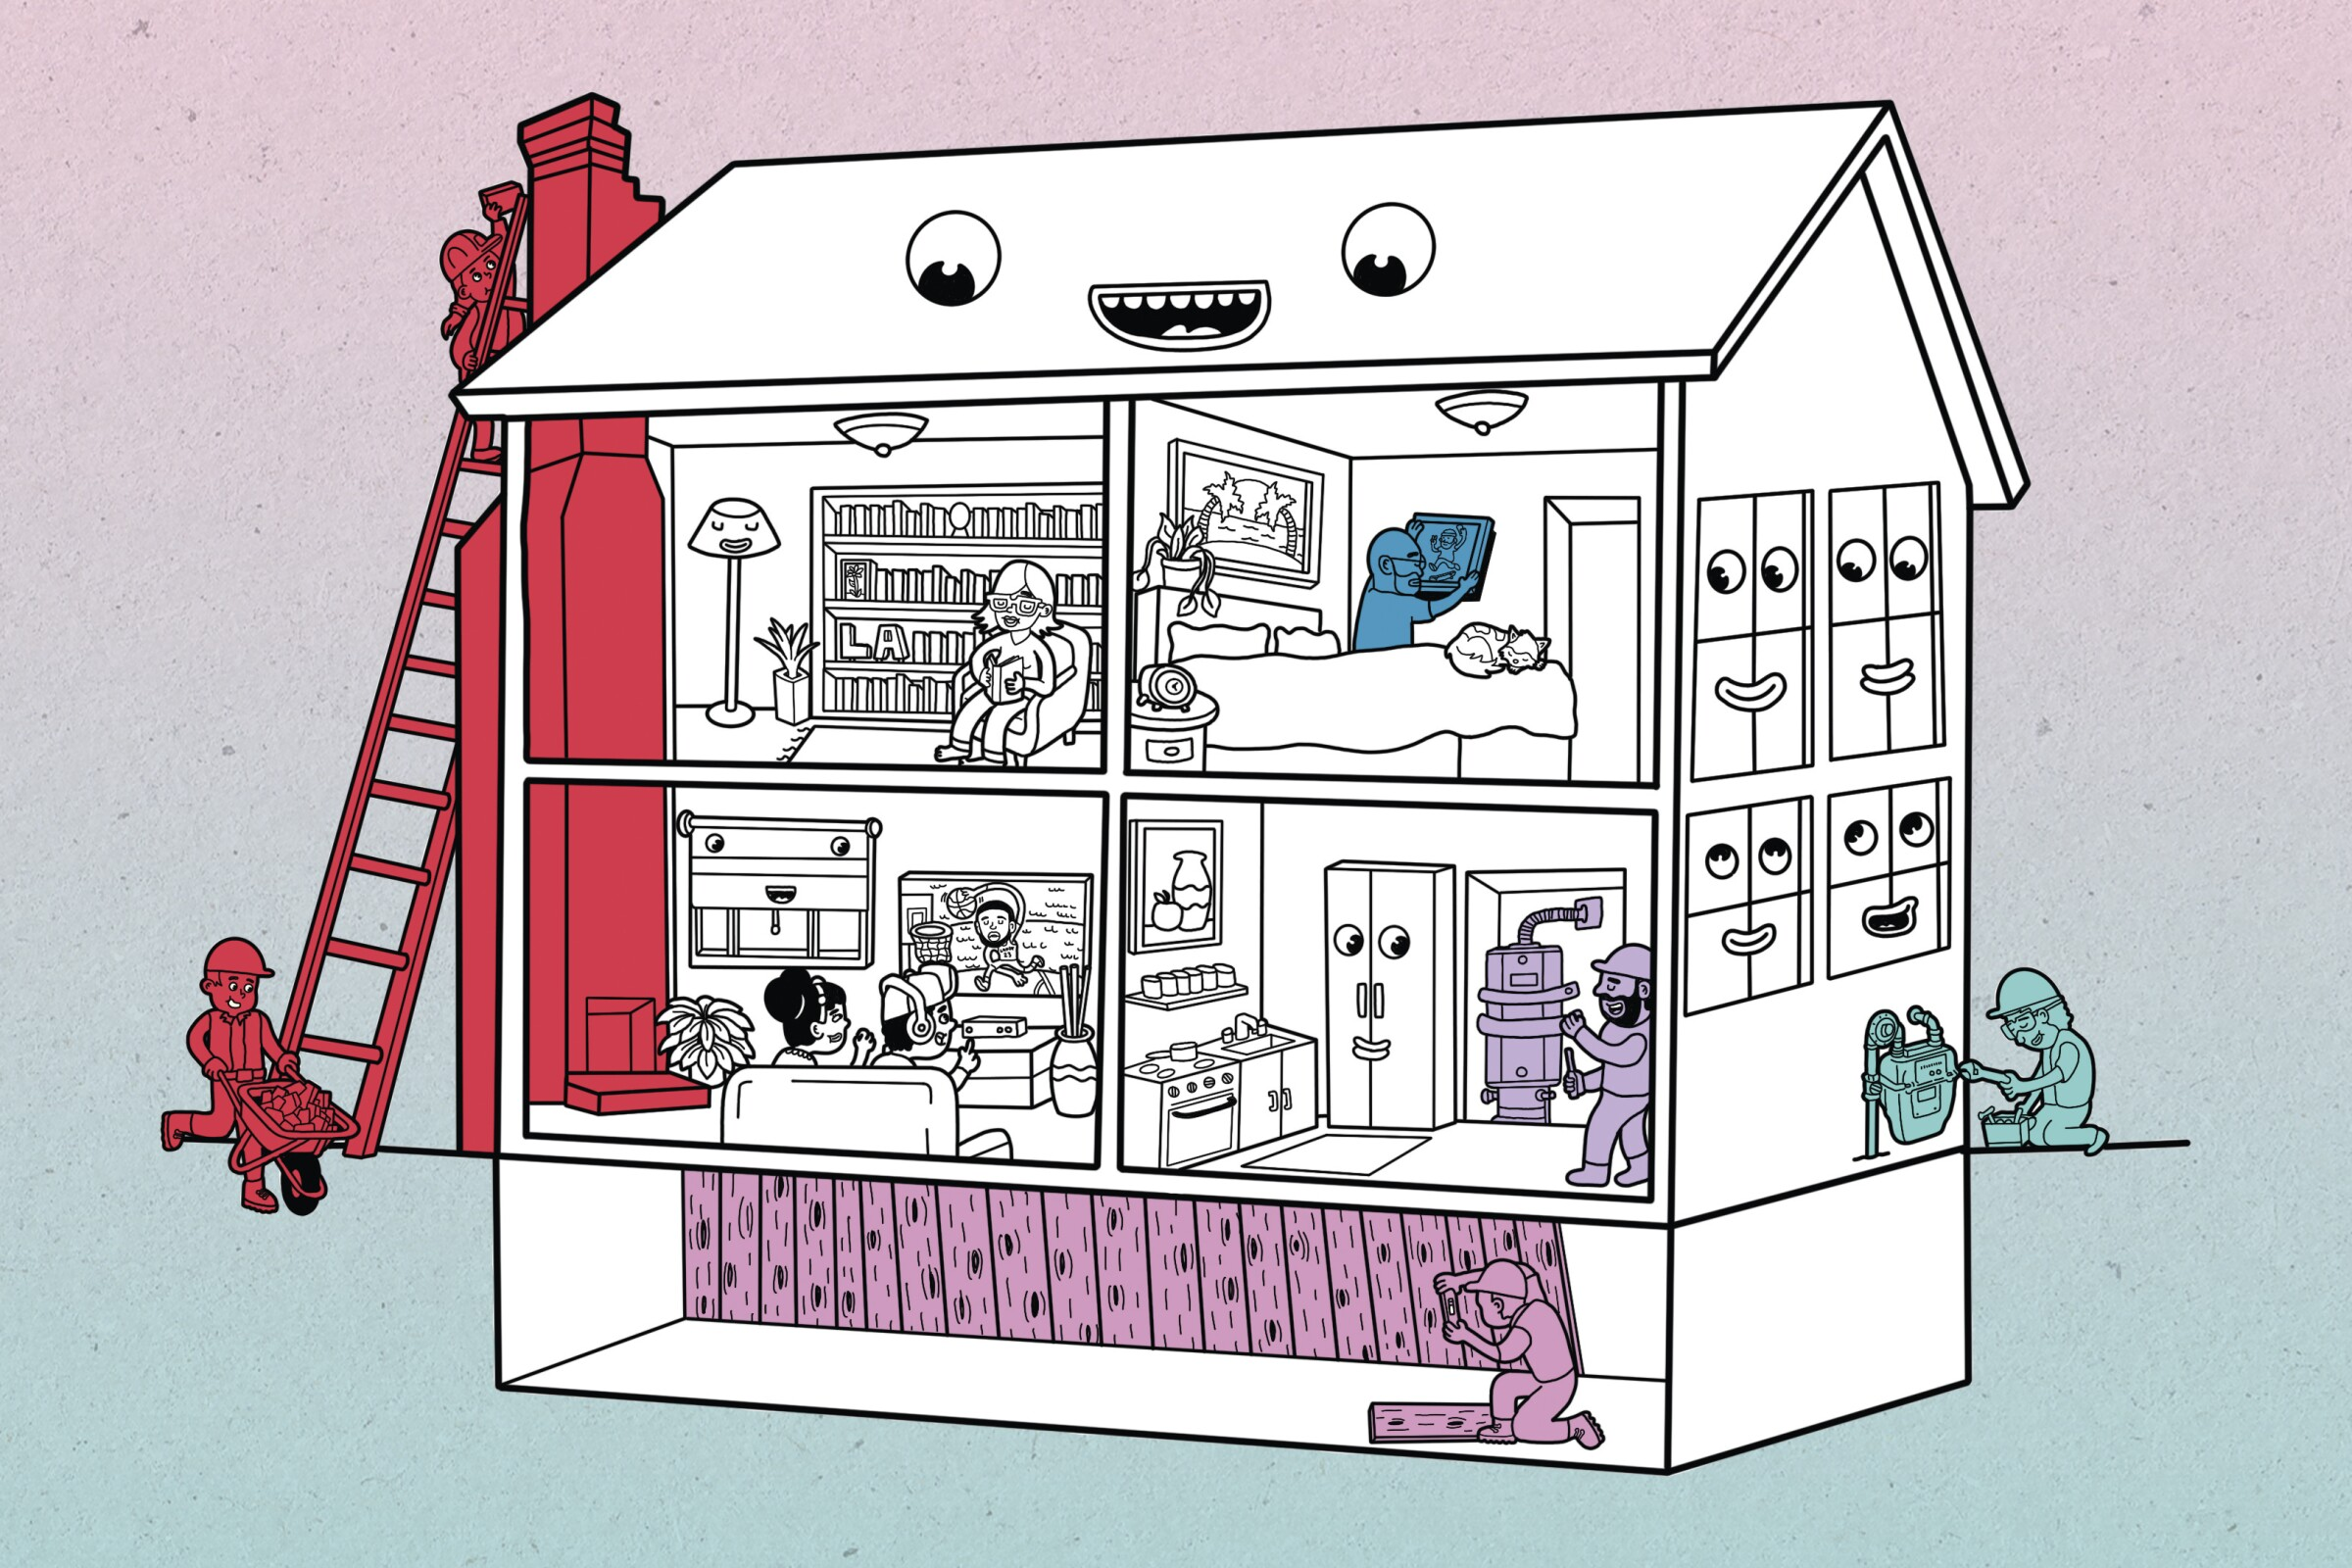 Illustration of a home with retrofitting work being performed